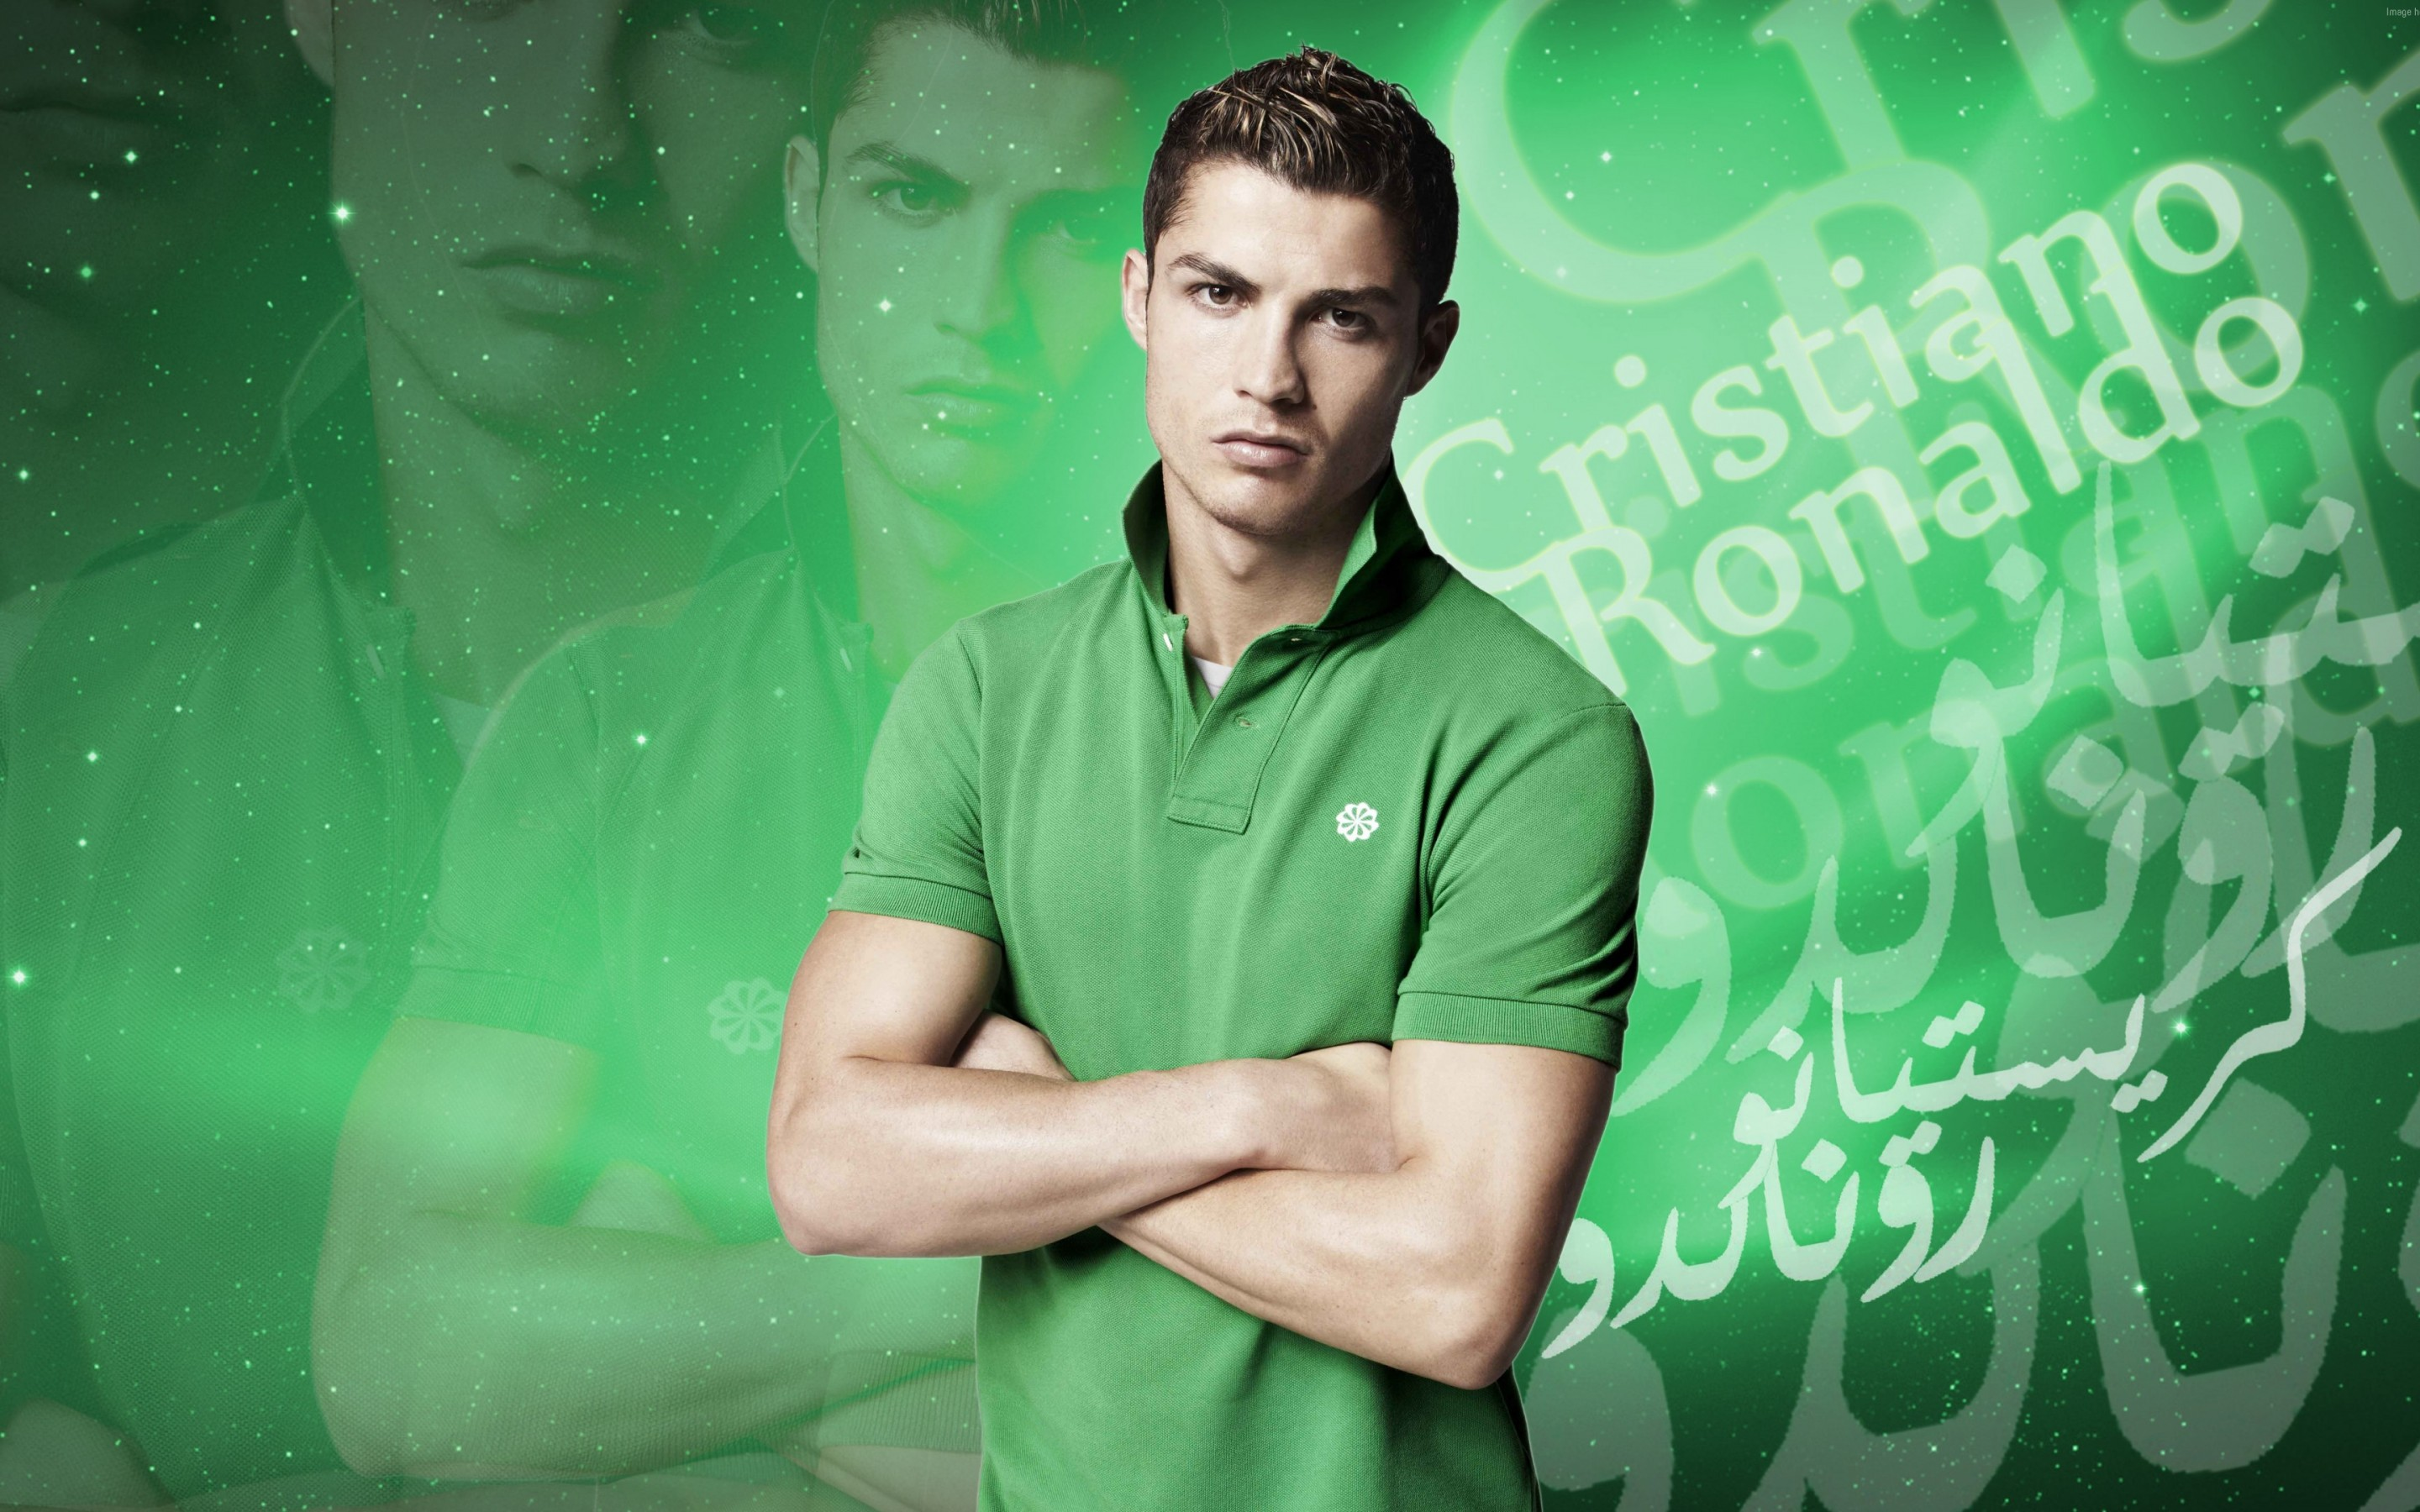 Picture Of Nike Basketball Quotes Hd Wallpapers Ronaldo Football Wallpapers Hd Pixelstalk Net